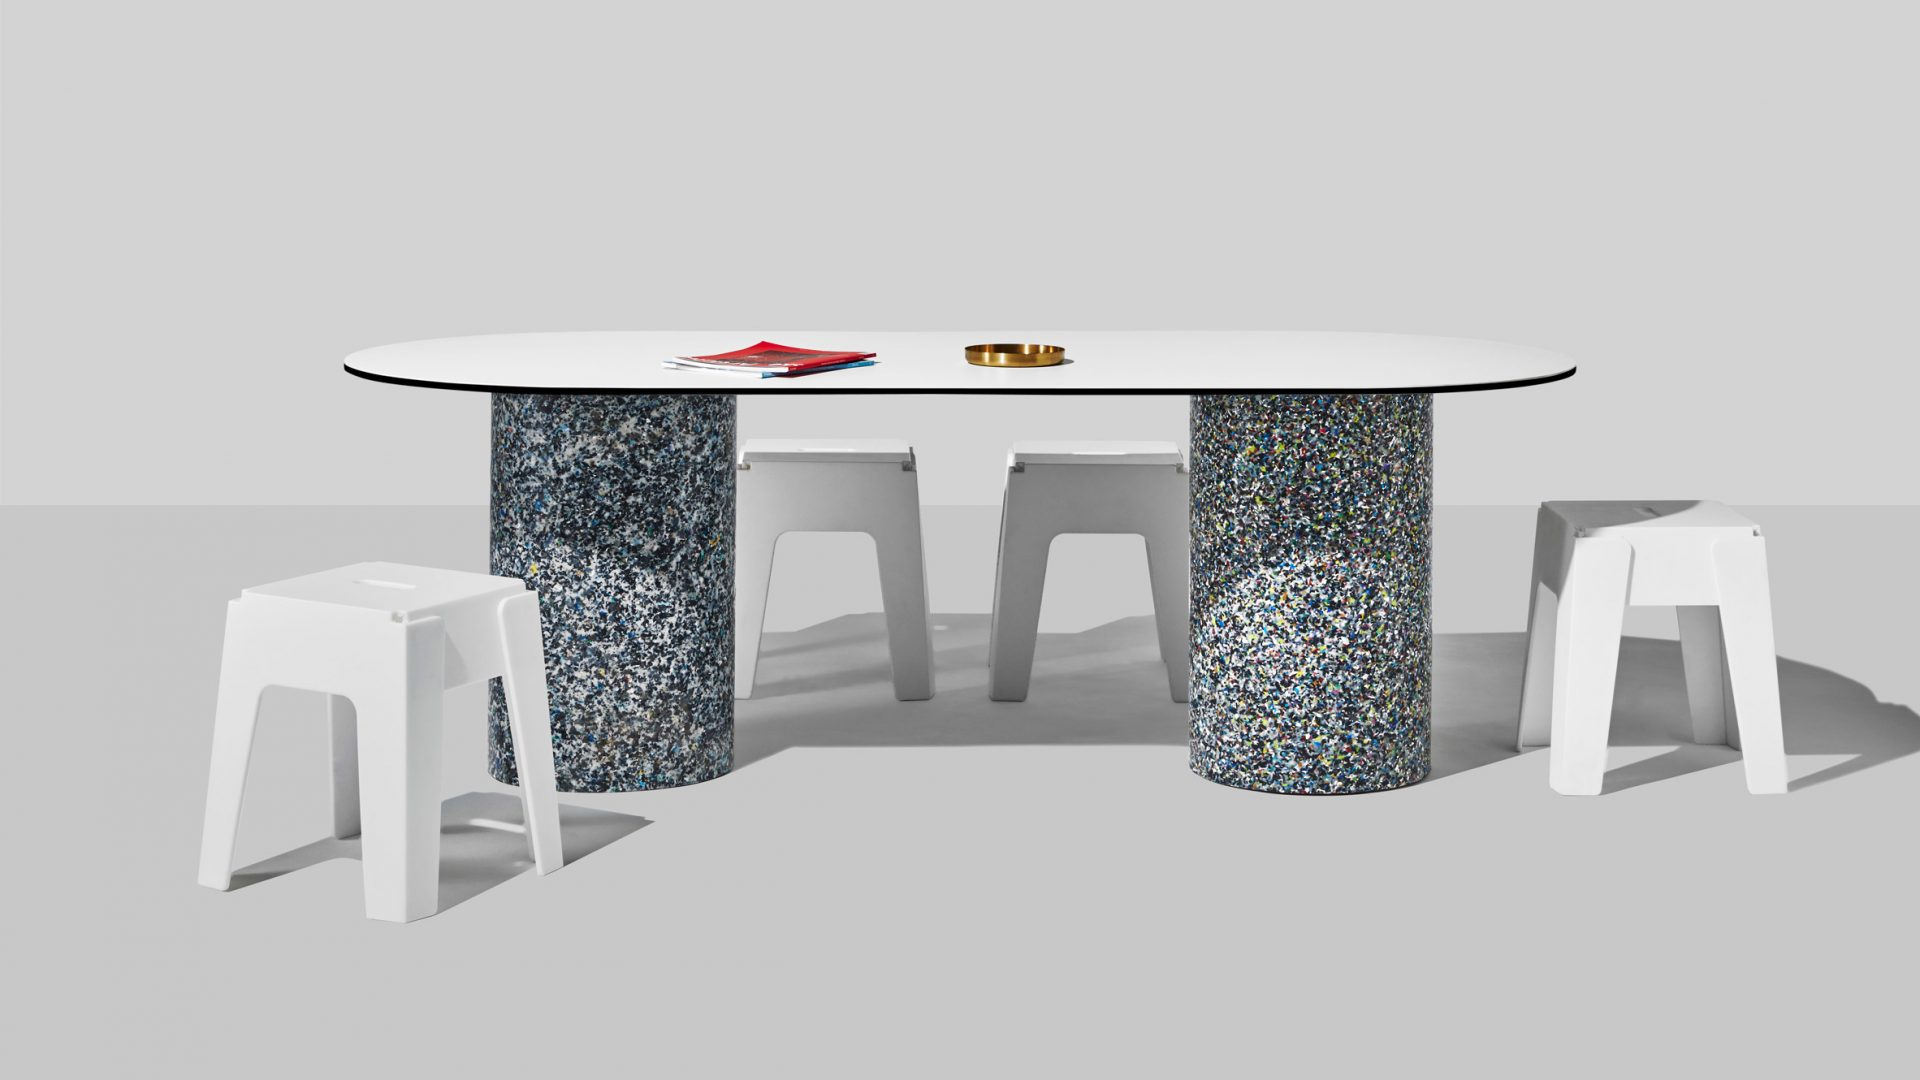 confetti furniture designbythem vdf products fair dezeen 2364 hero2